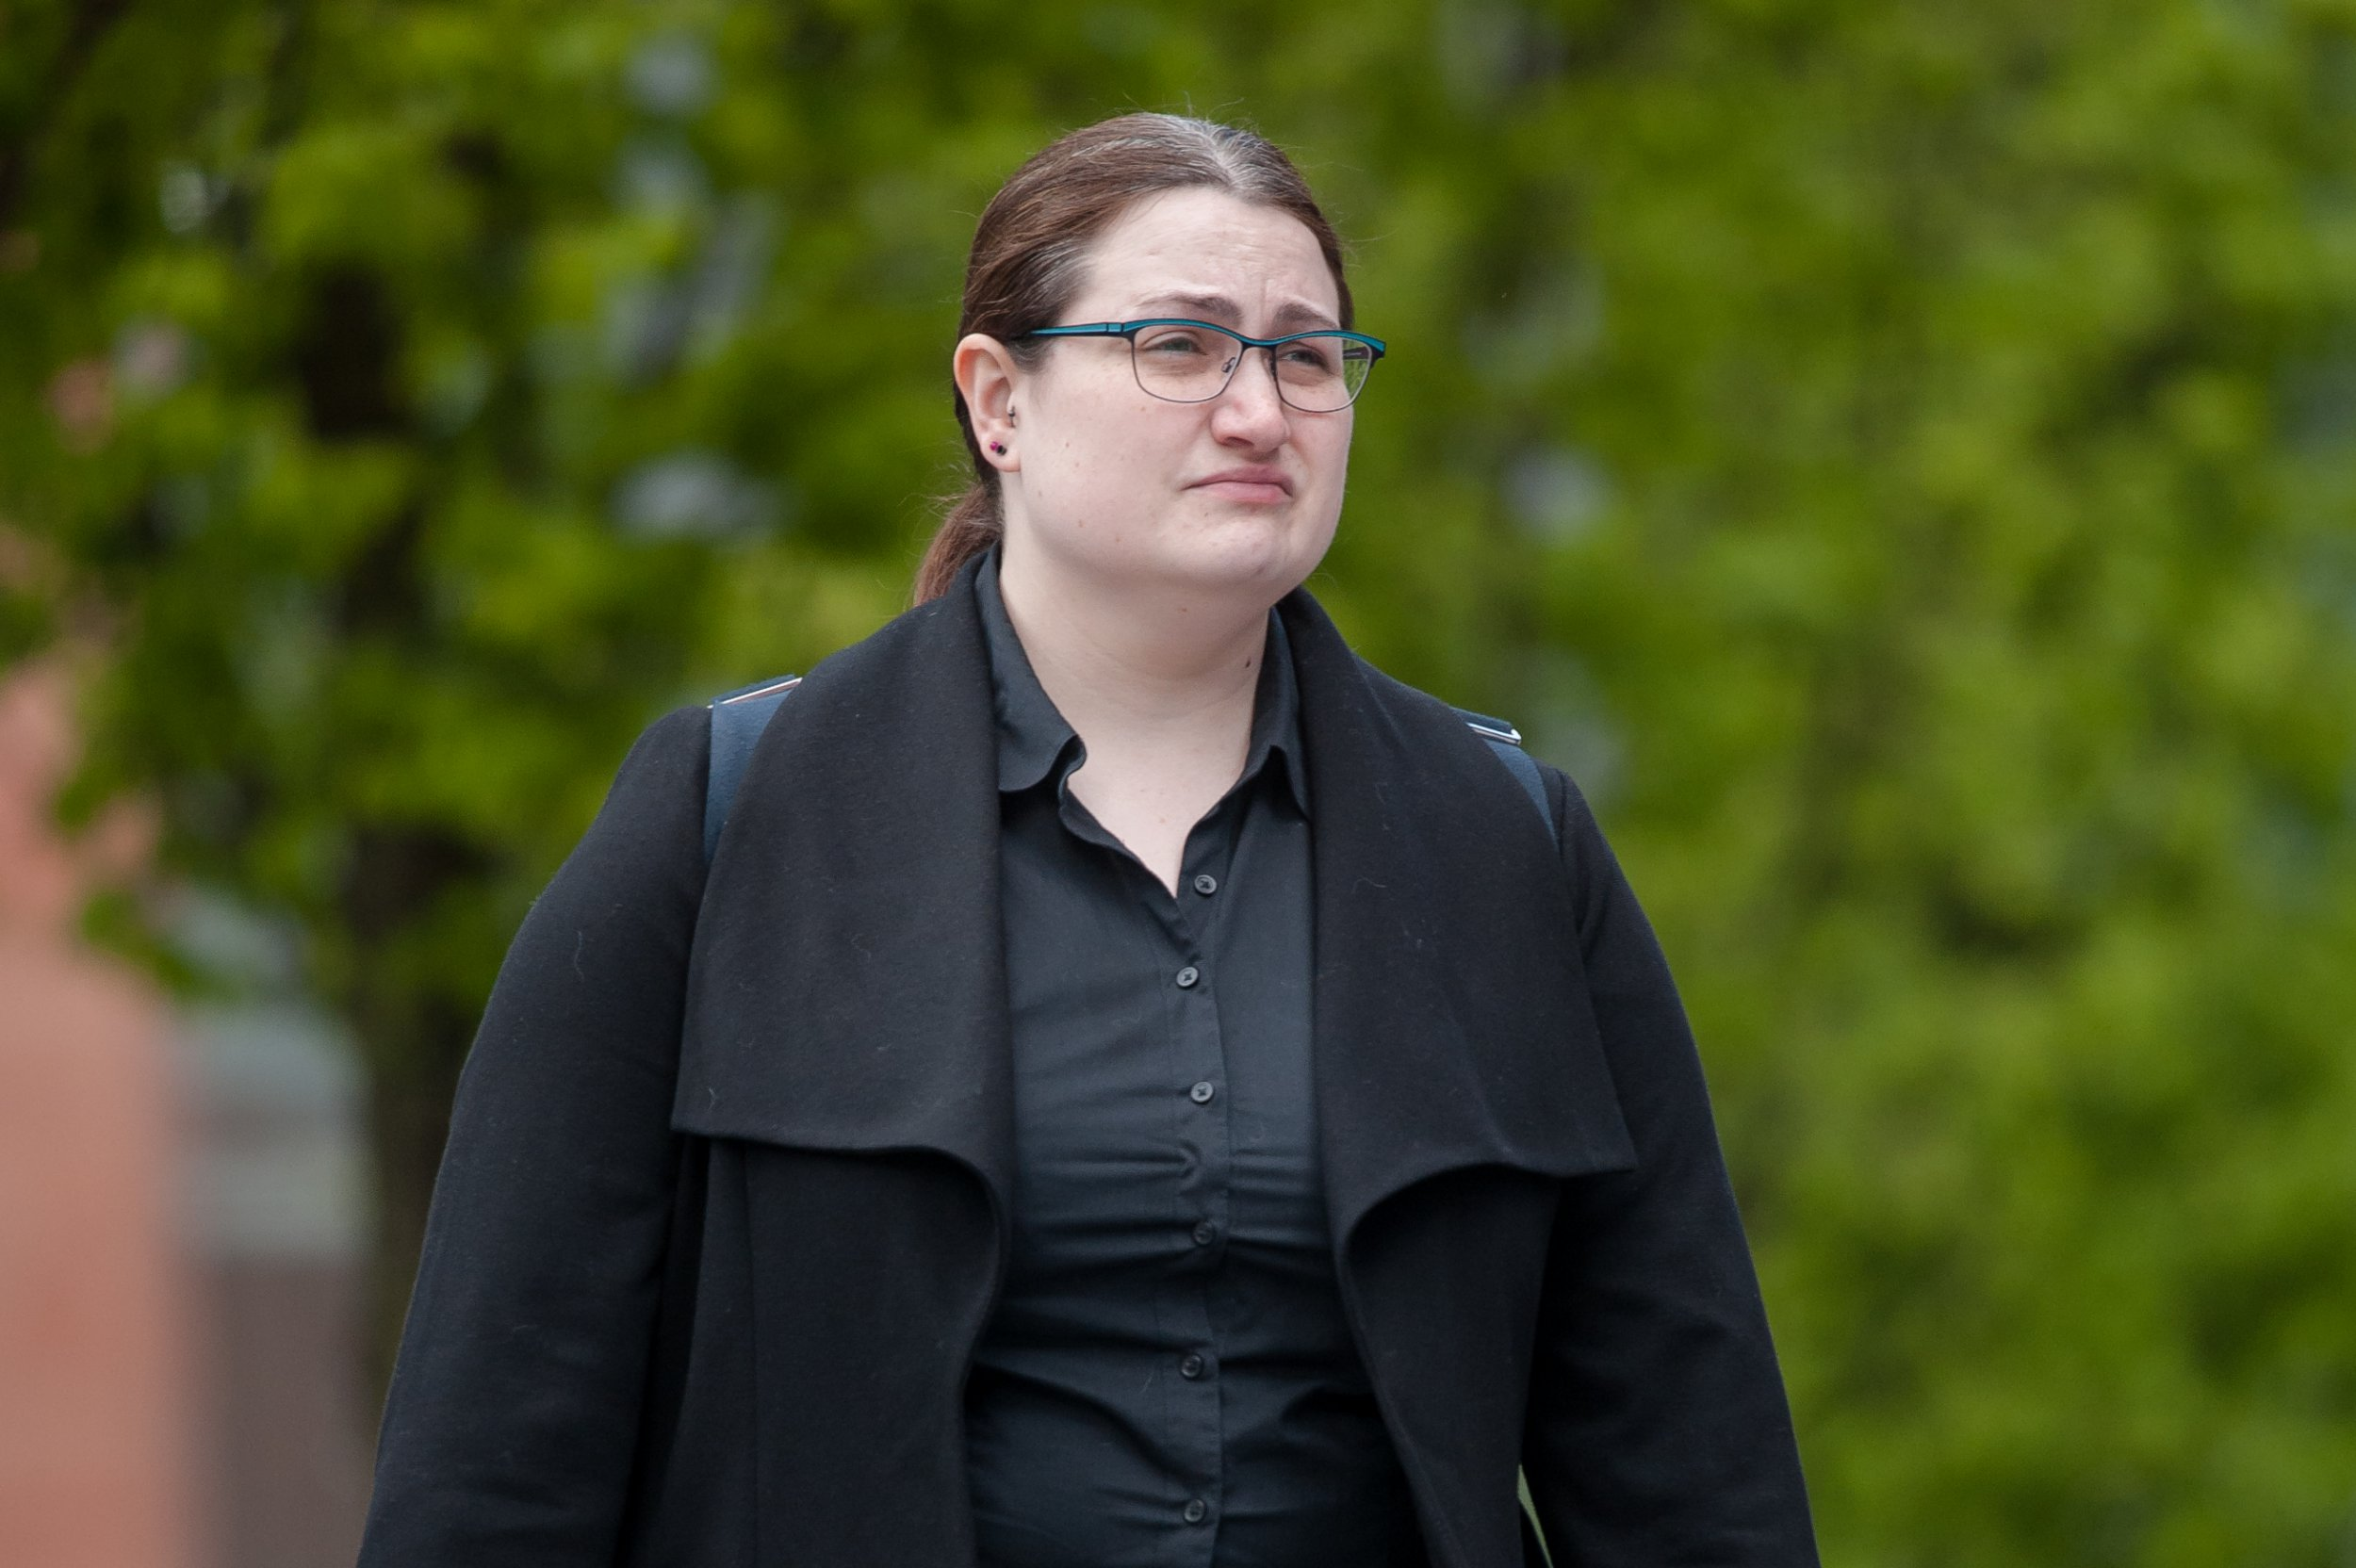 Laura Nixon-Corfield, an NHS administrator outside court. She led a secret double life as an online paedophile but escaped jail after she said her squalid behaviour occurred during an abusive romance she was having with her boyfriend.Disclaimer: While Cavendish Press (Manchester) Ltd uses its' best endeavours to establish the copyright and authenticity of all pictures supplied, it accepts no liability for any damage, loss or legal action caused by the use of images supplied. The publication of images is solely at your discretion. For terms and conditions see http://www.cavendish-press.co.uk/pages/terms-and-conditions.aspx